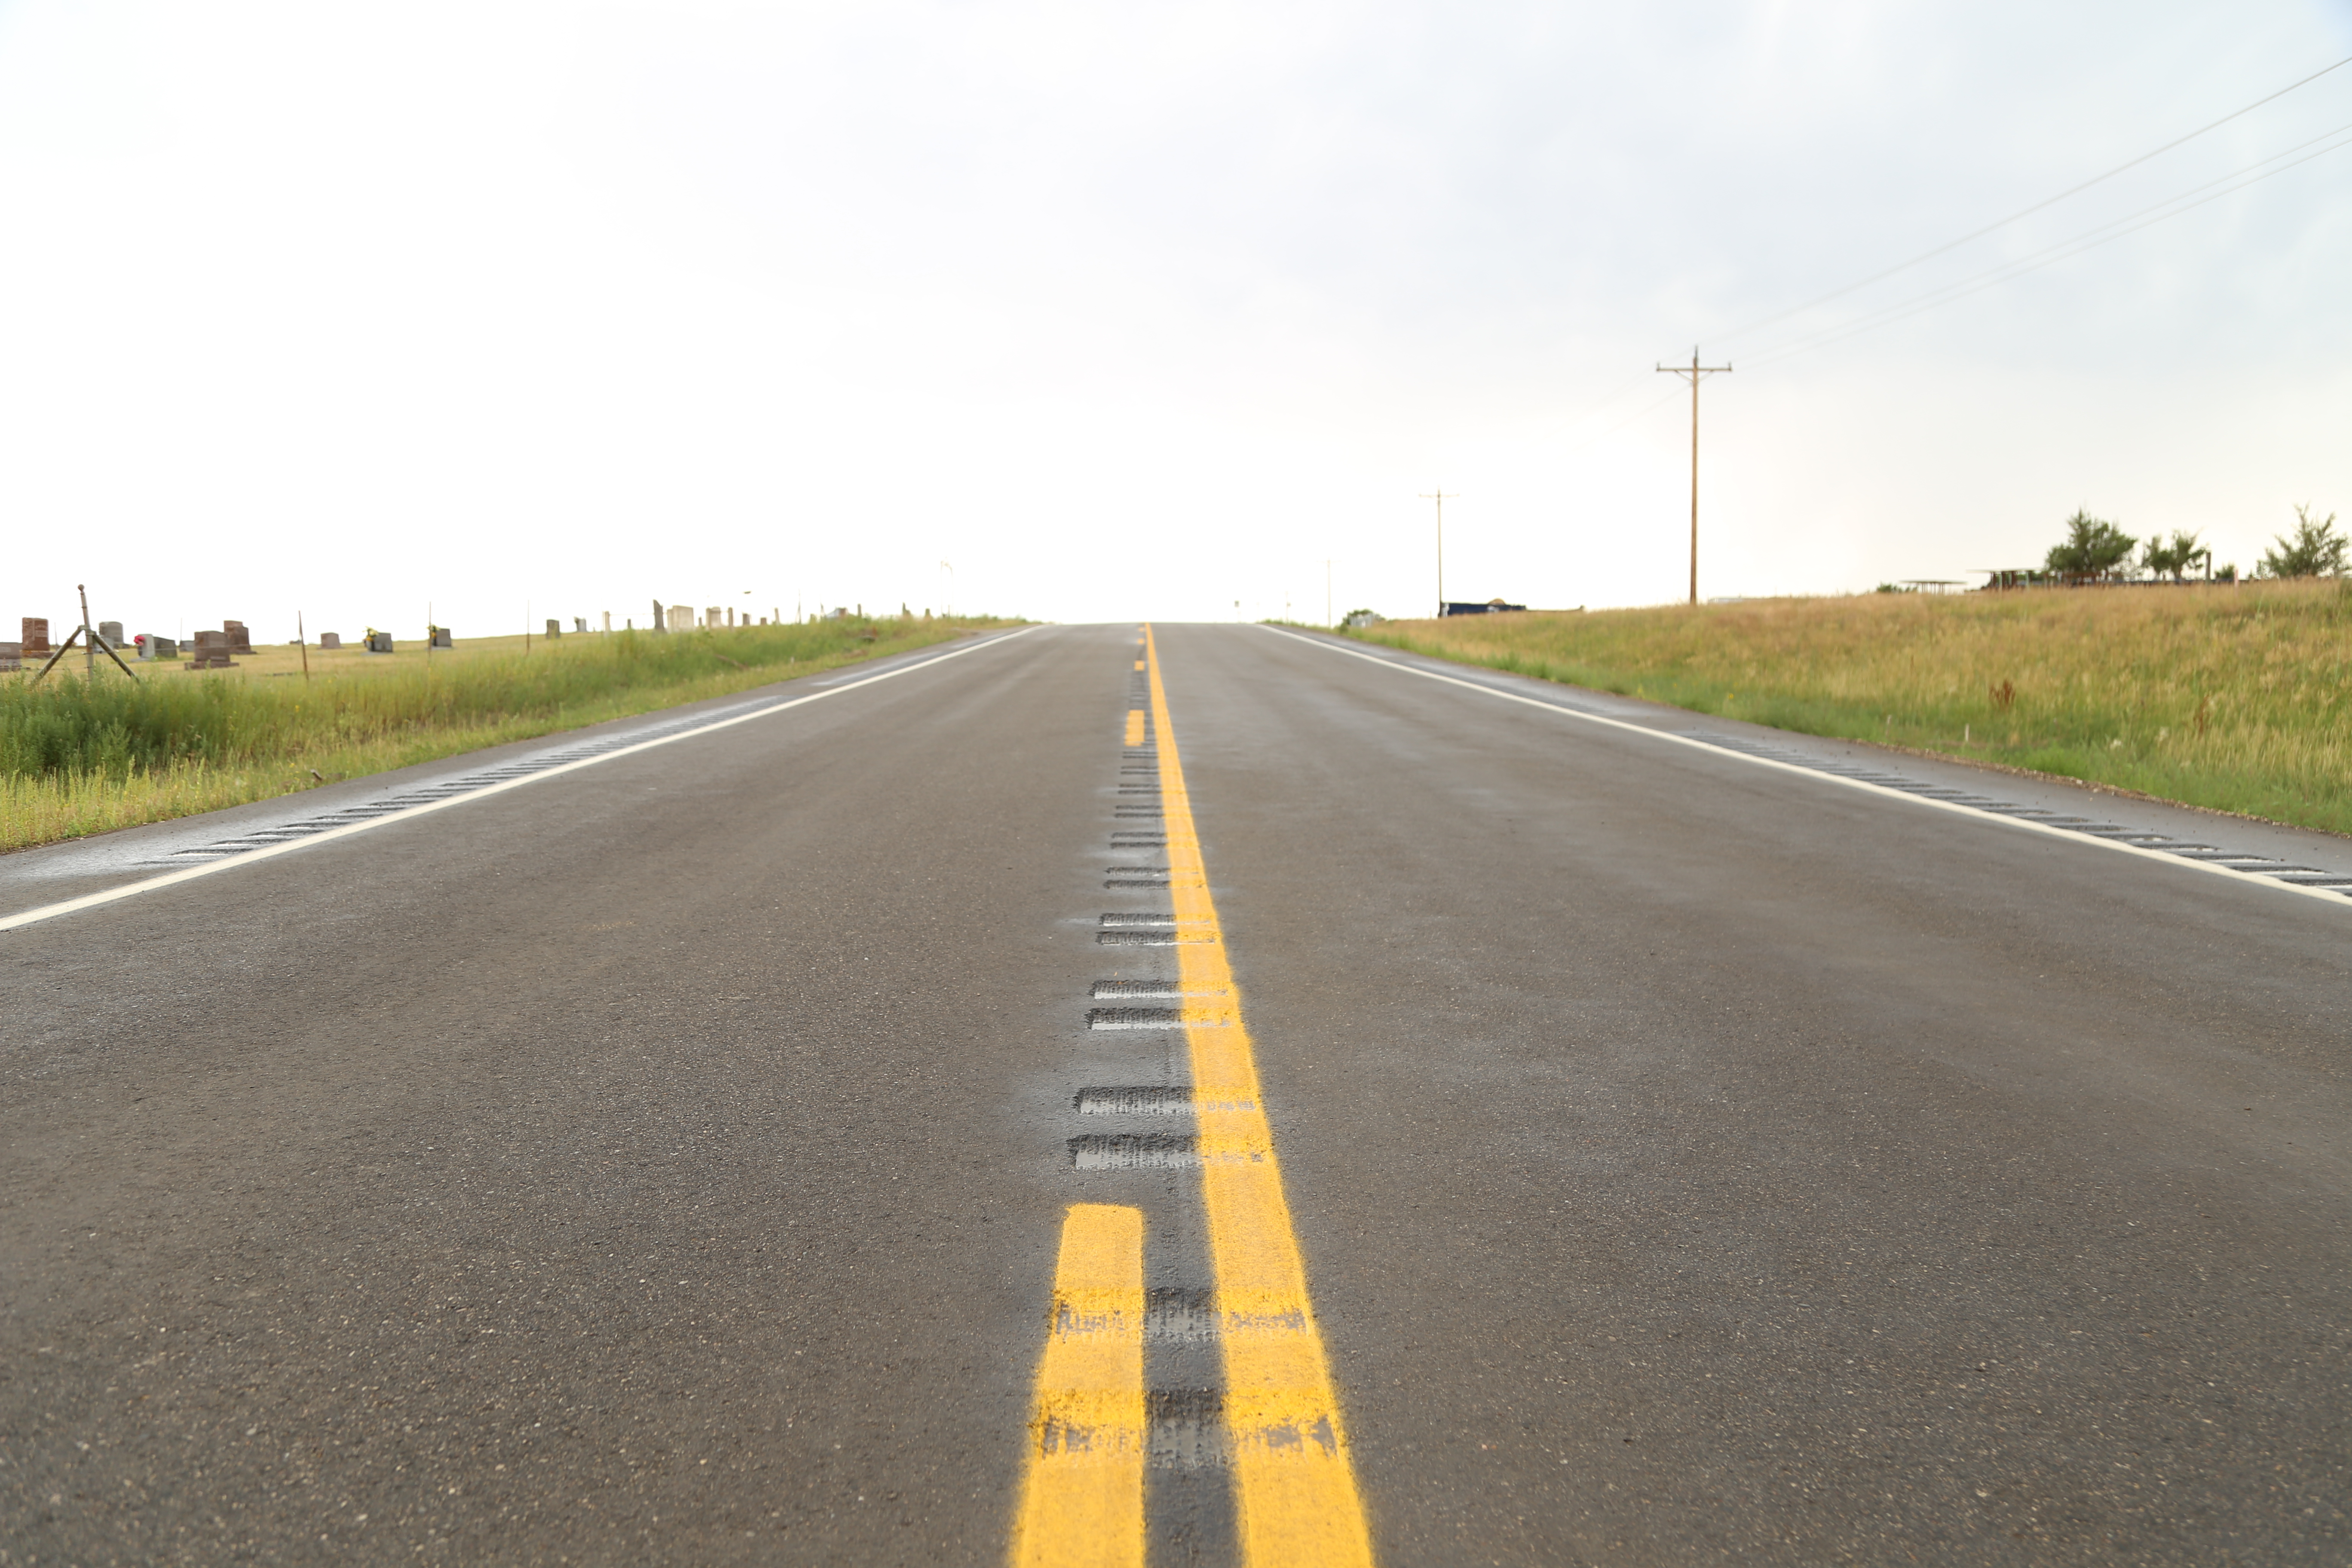 WILLIAMS COUNTY ROAD 42